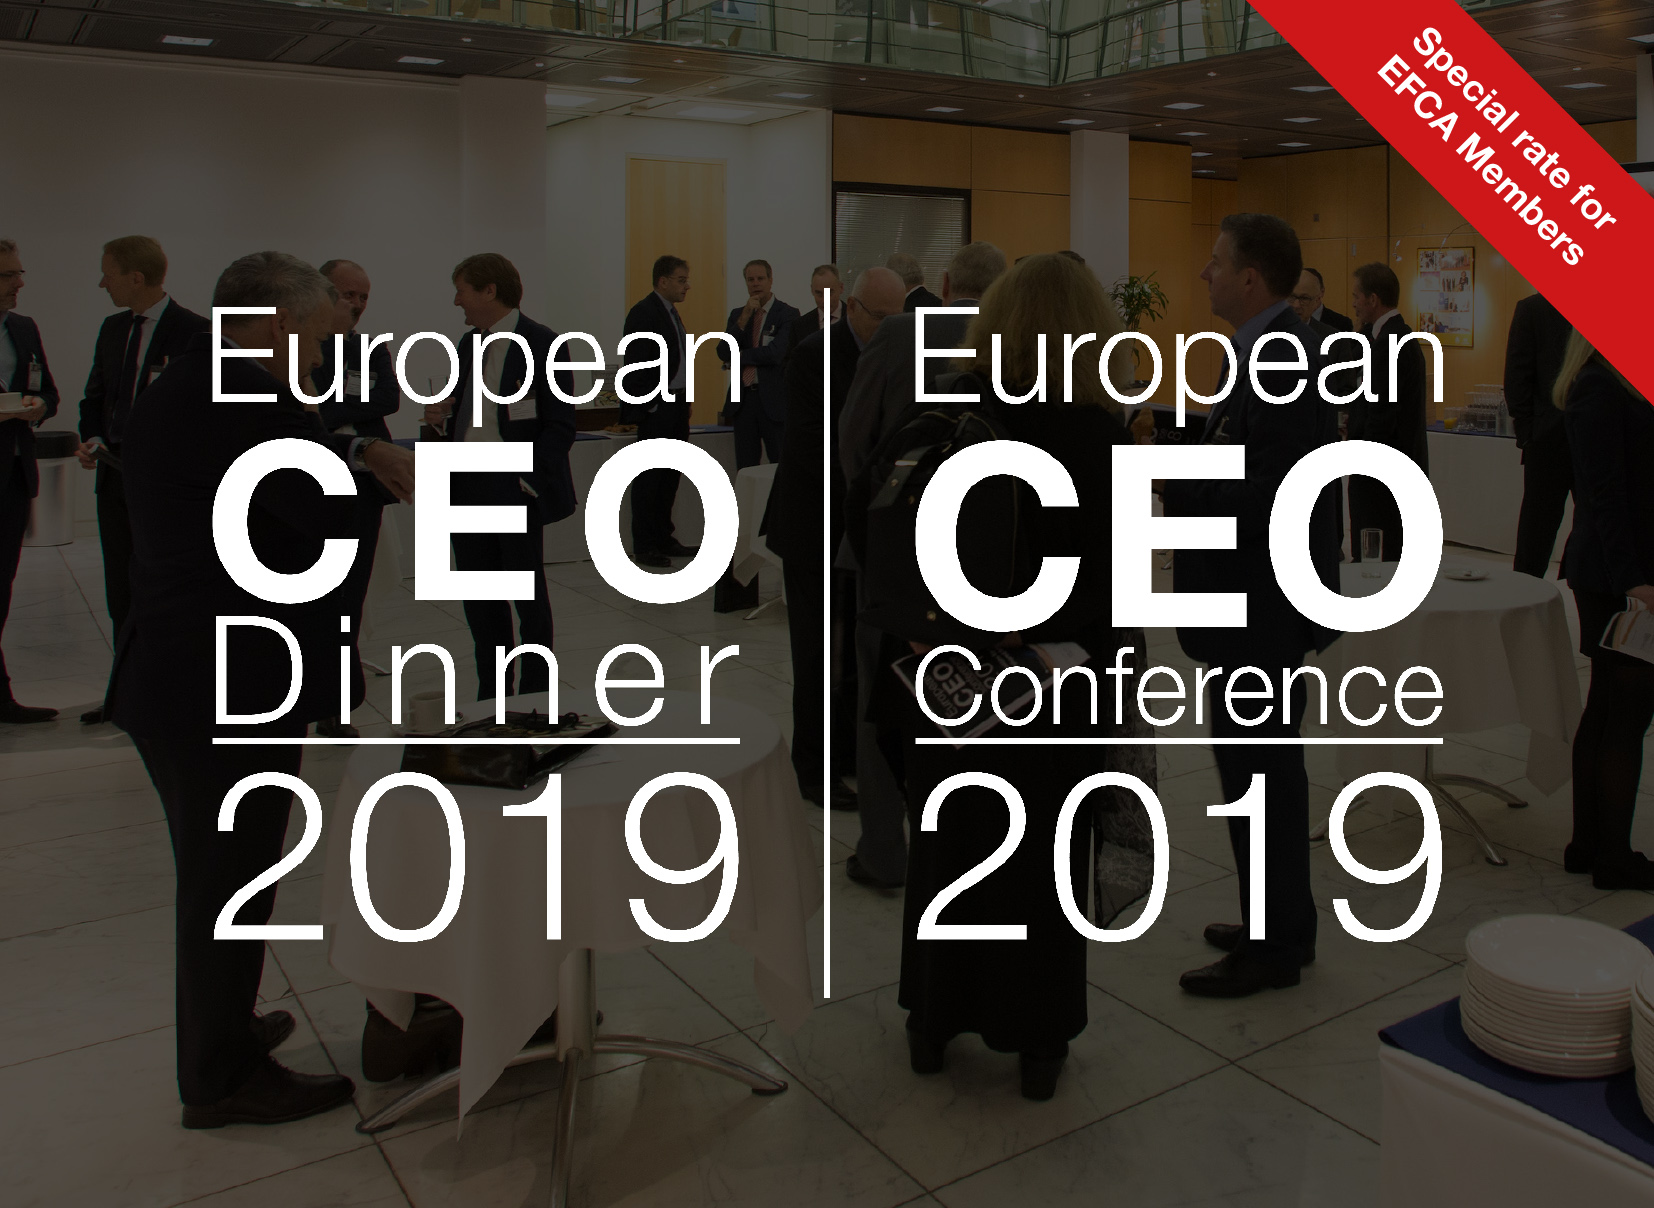 European CEO Conference 2019